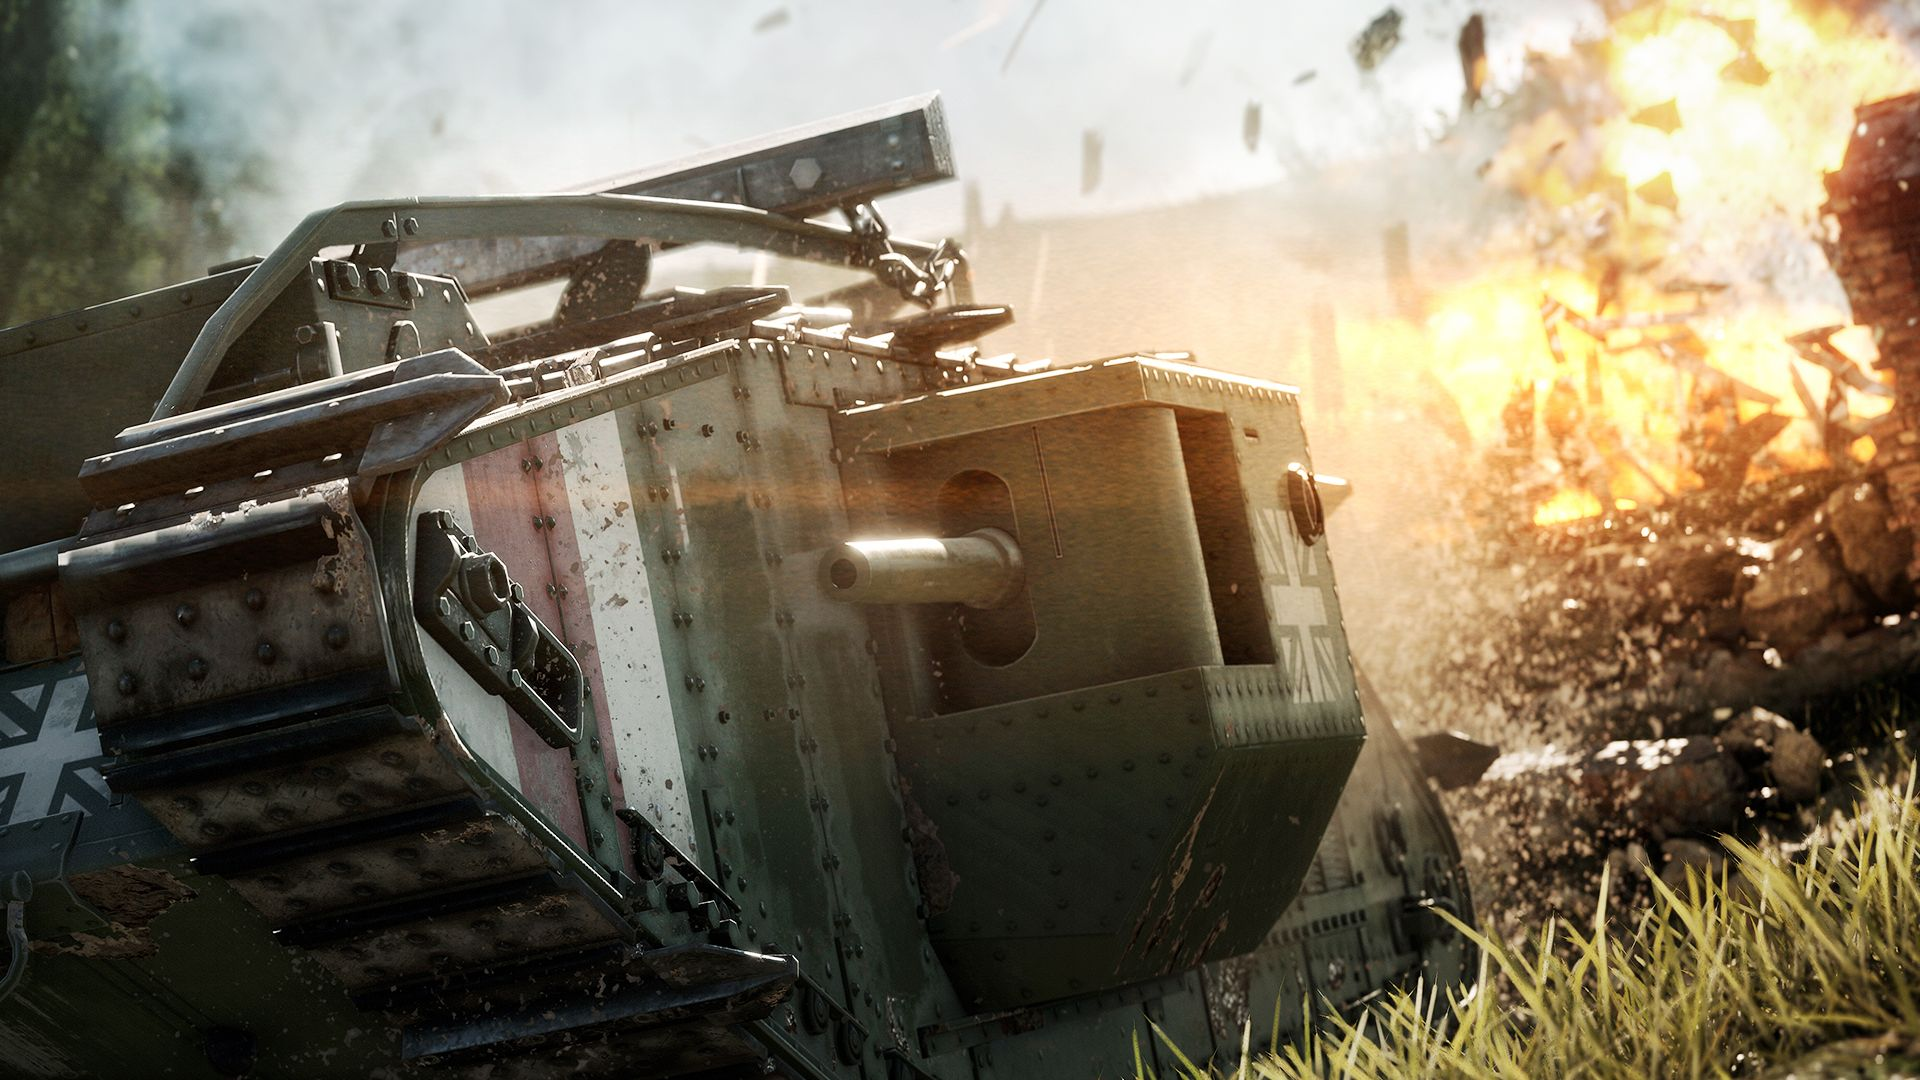 bf1_pdp_screenhi_1920x1080_en_ww_tank_v1.jpg